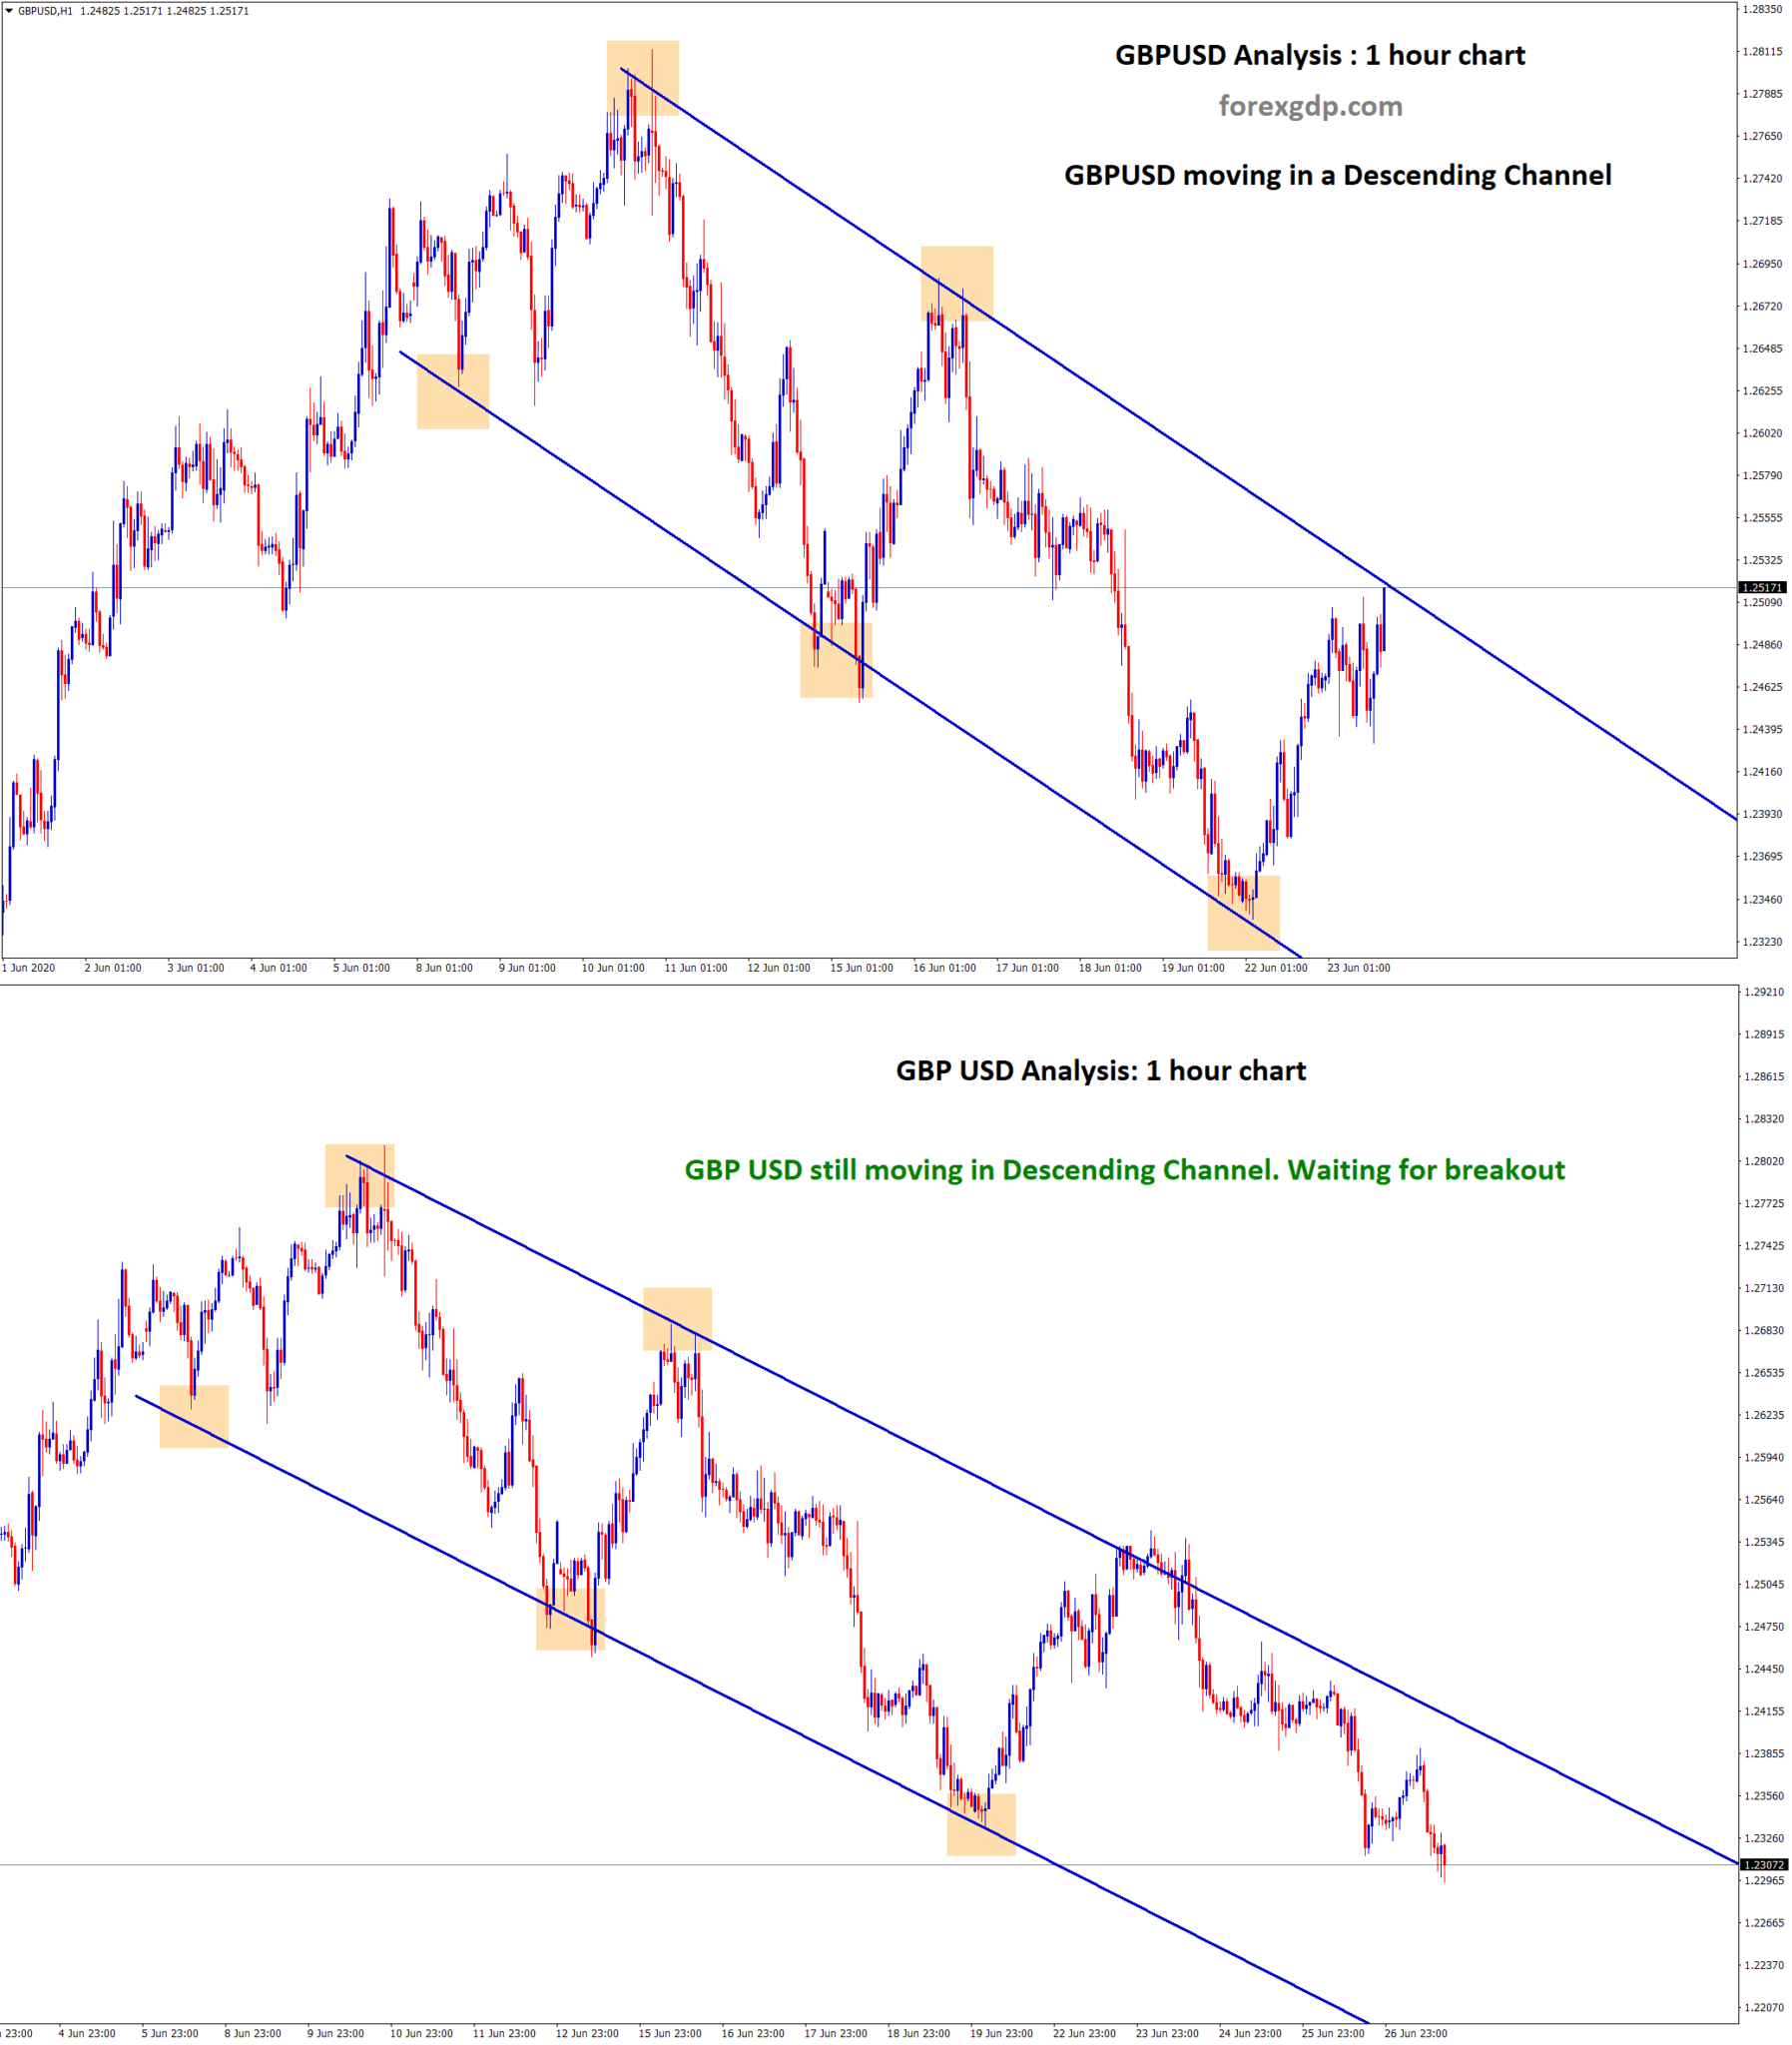 gbpusd waiting for breakout from descending channel 1hr